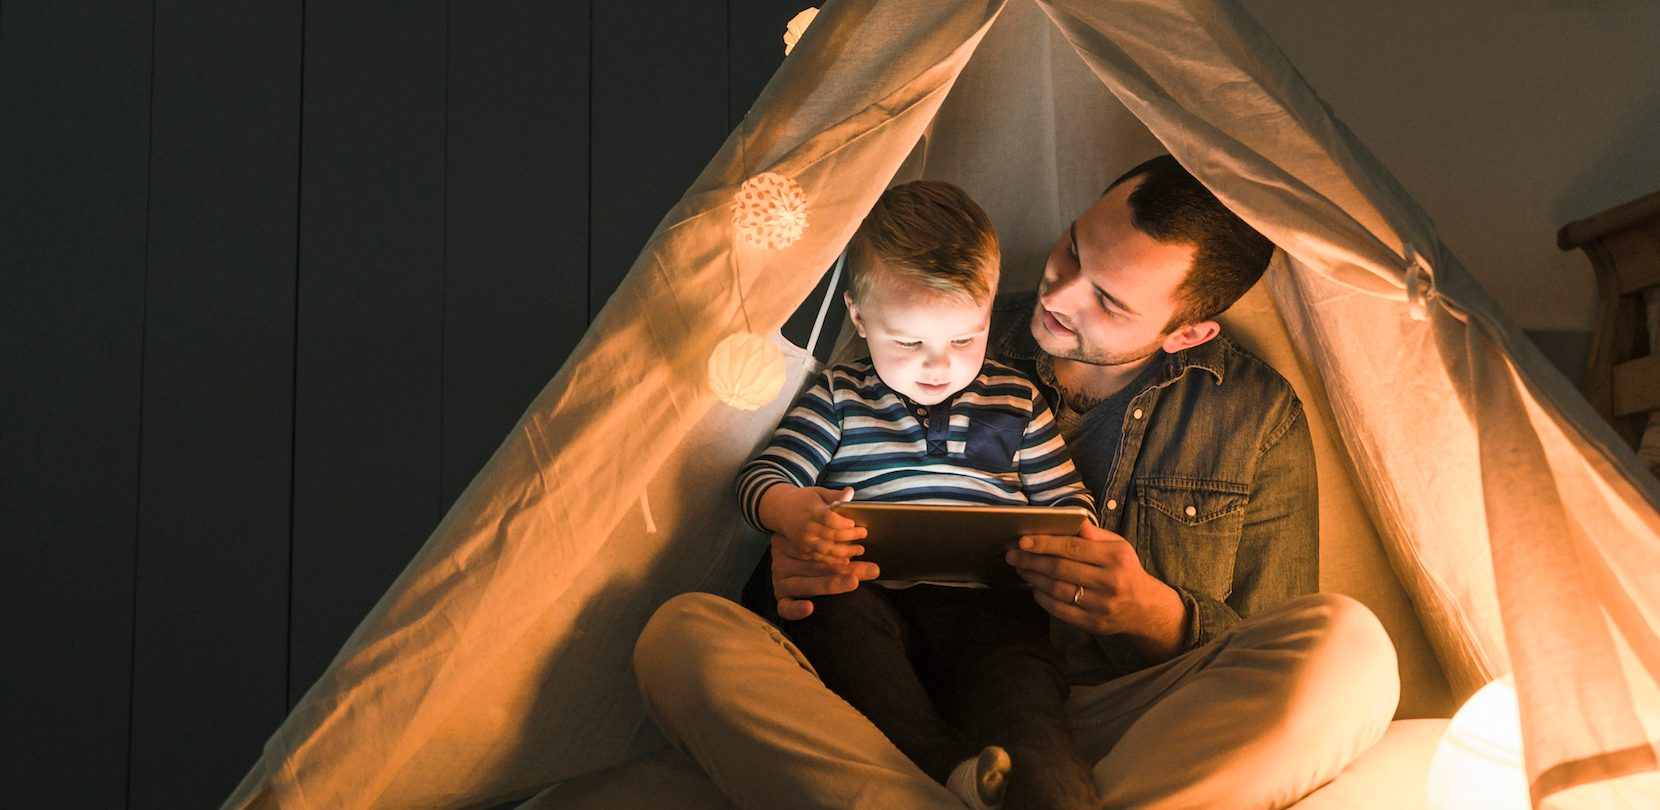 dad-and-son-in-tent-using-energy